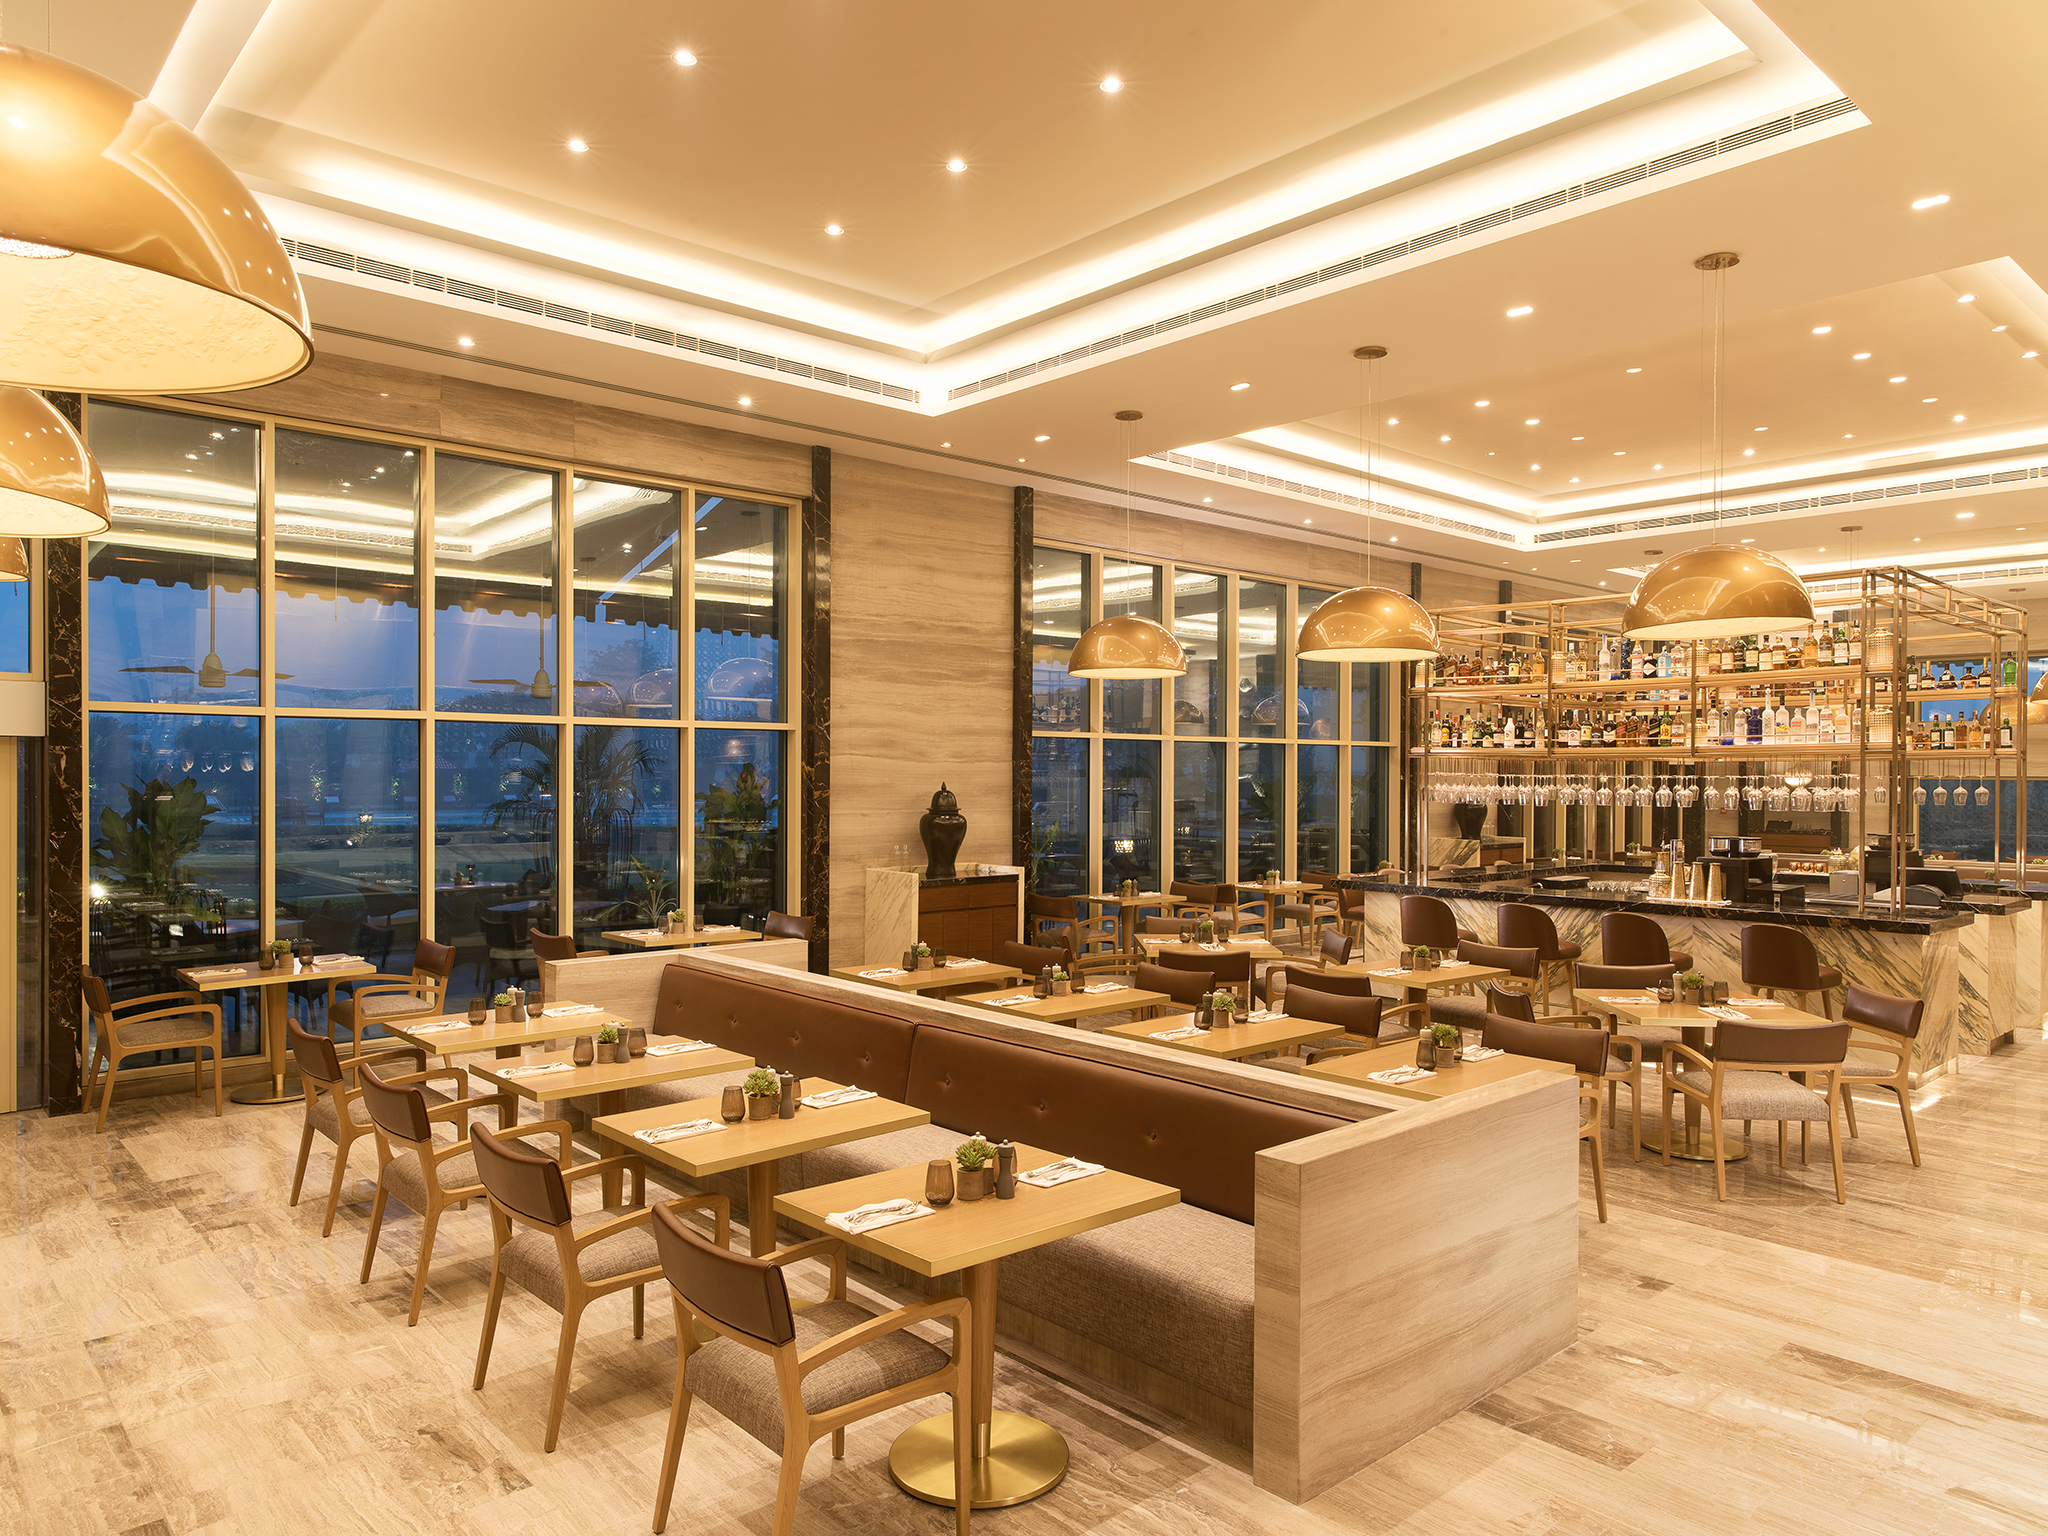 Capital Kitchen Luxury All Day Dining Restaurant In Taj